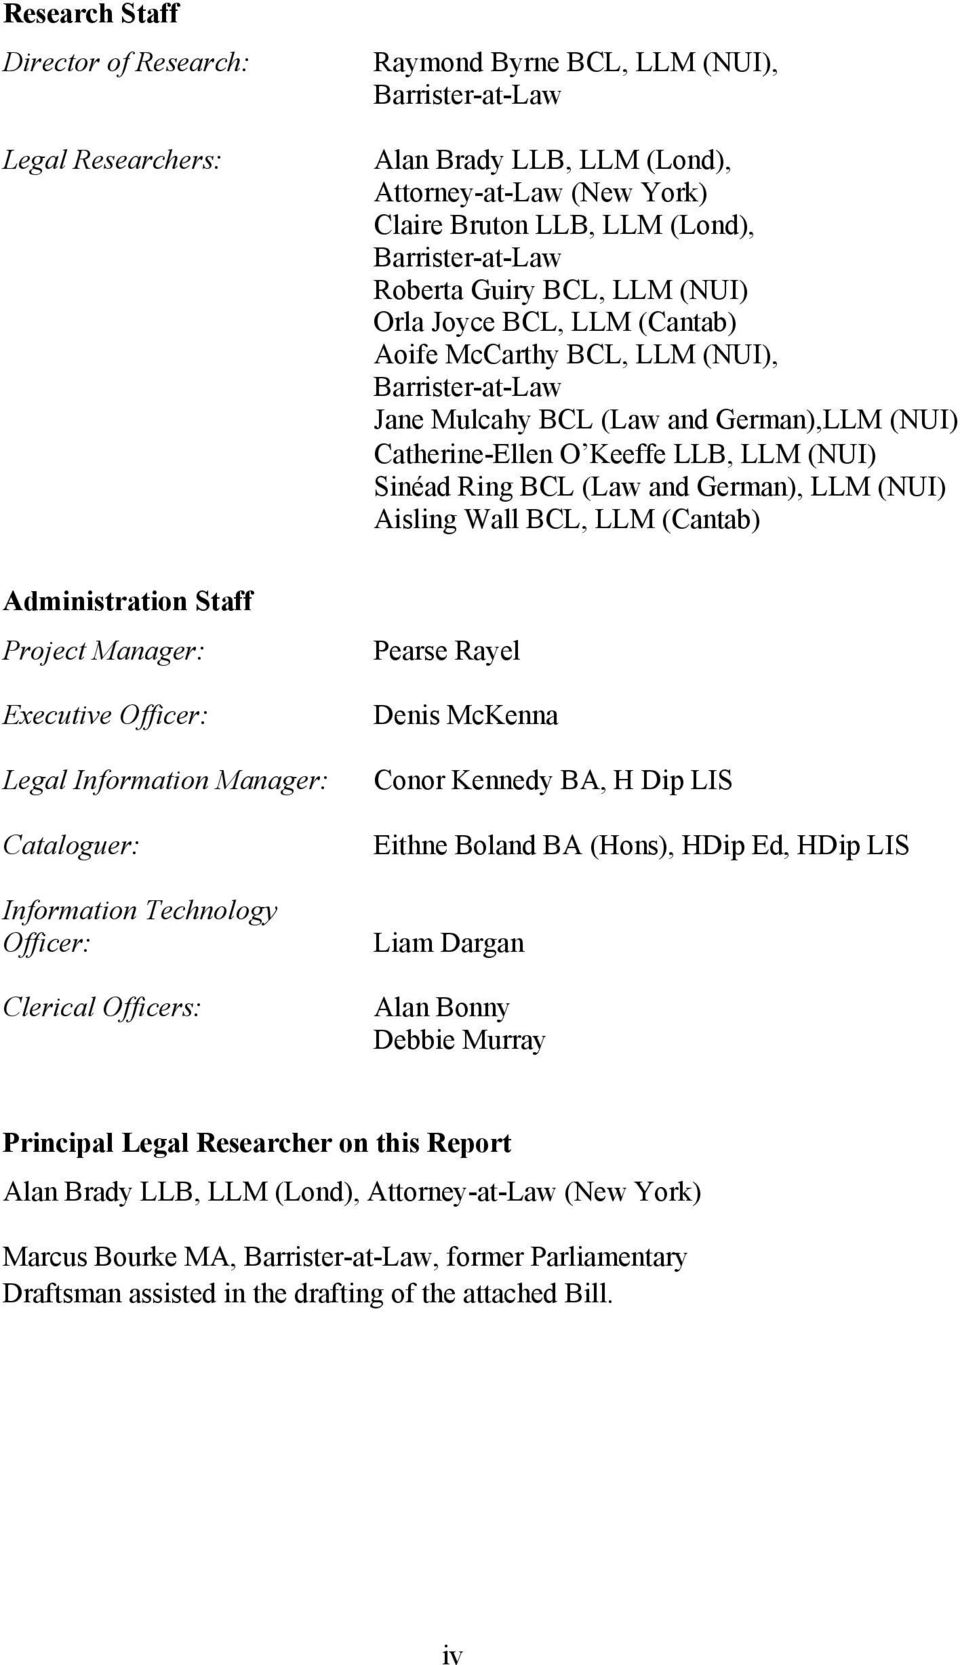 LLM (NUI) Sinéad Ring BCL (Law and German), LLM (NUI) Aisling Wall BCL, LLM (Cantab) Administration Staff Project Manager: Executive Officer: Legal Information Manager: Cataloguer: Information